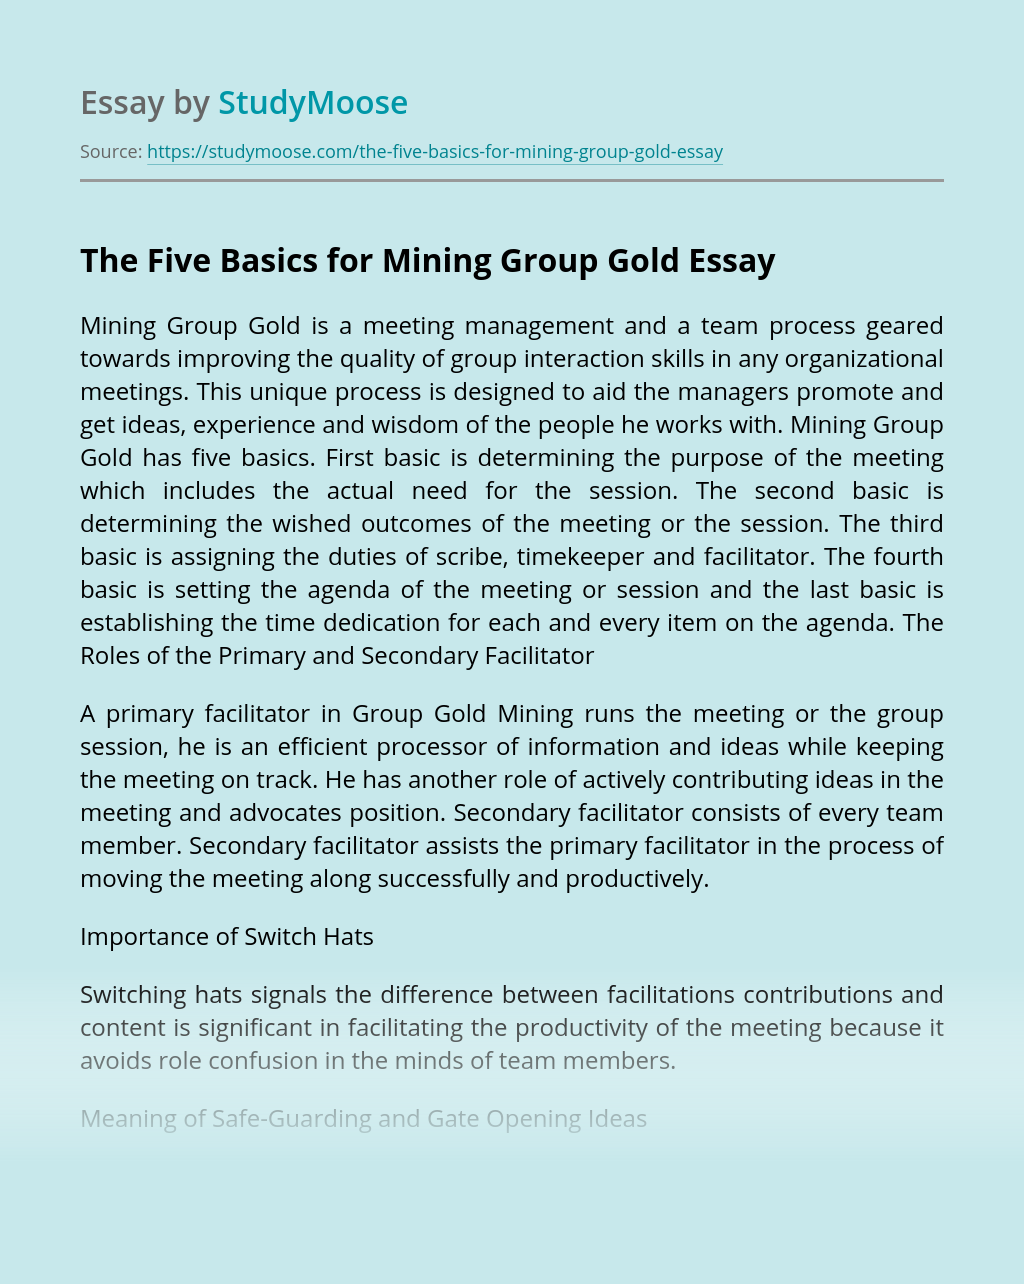 The Five Basics for Mining Group Gold